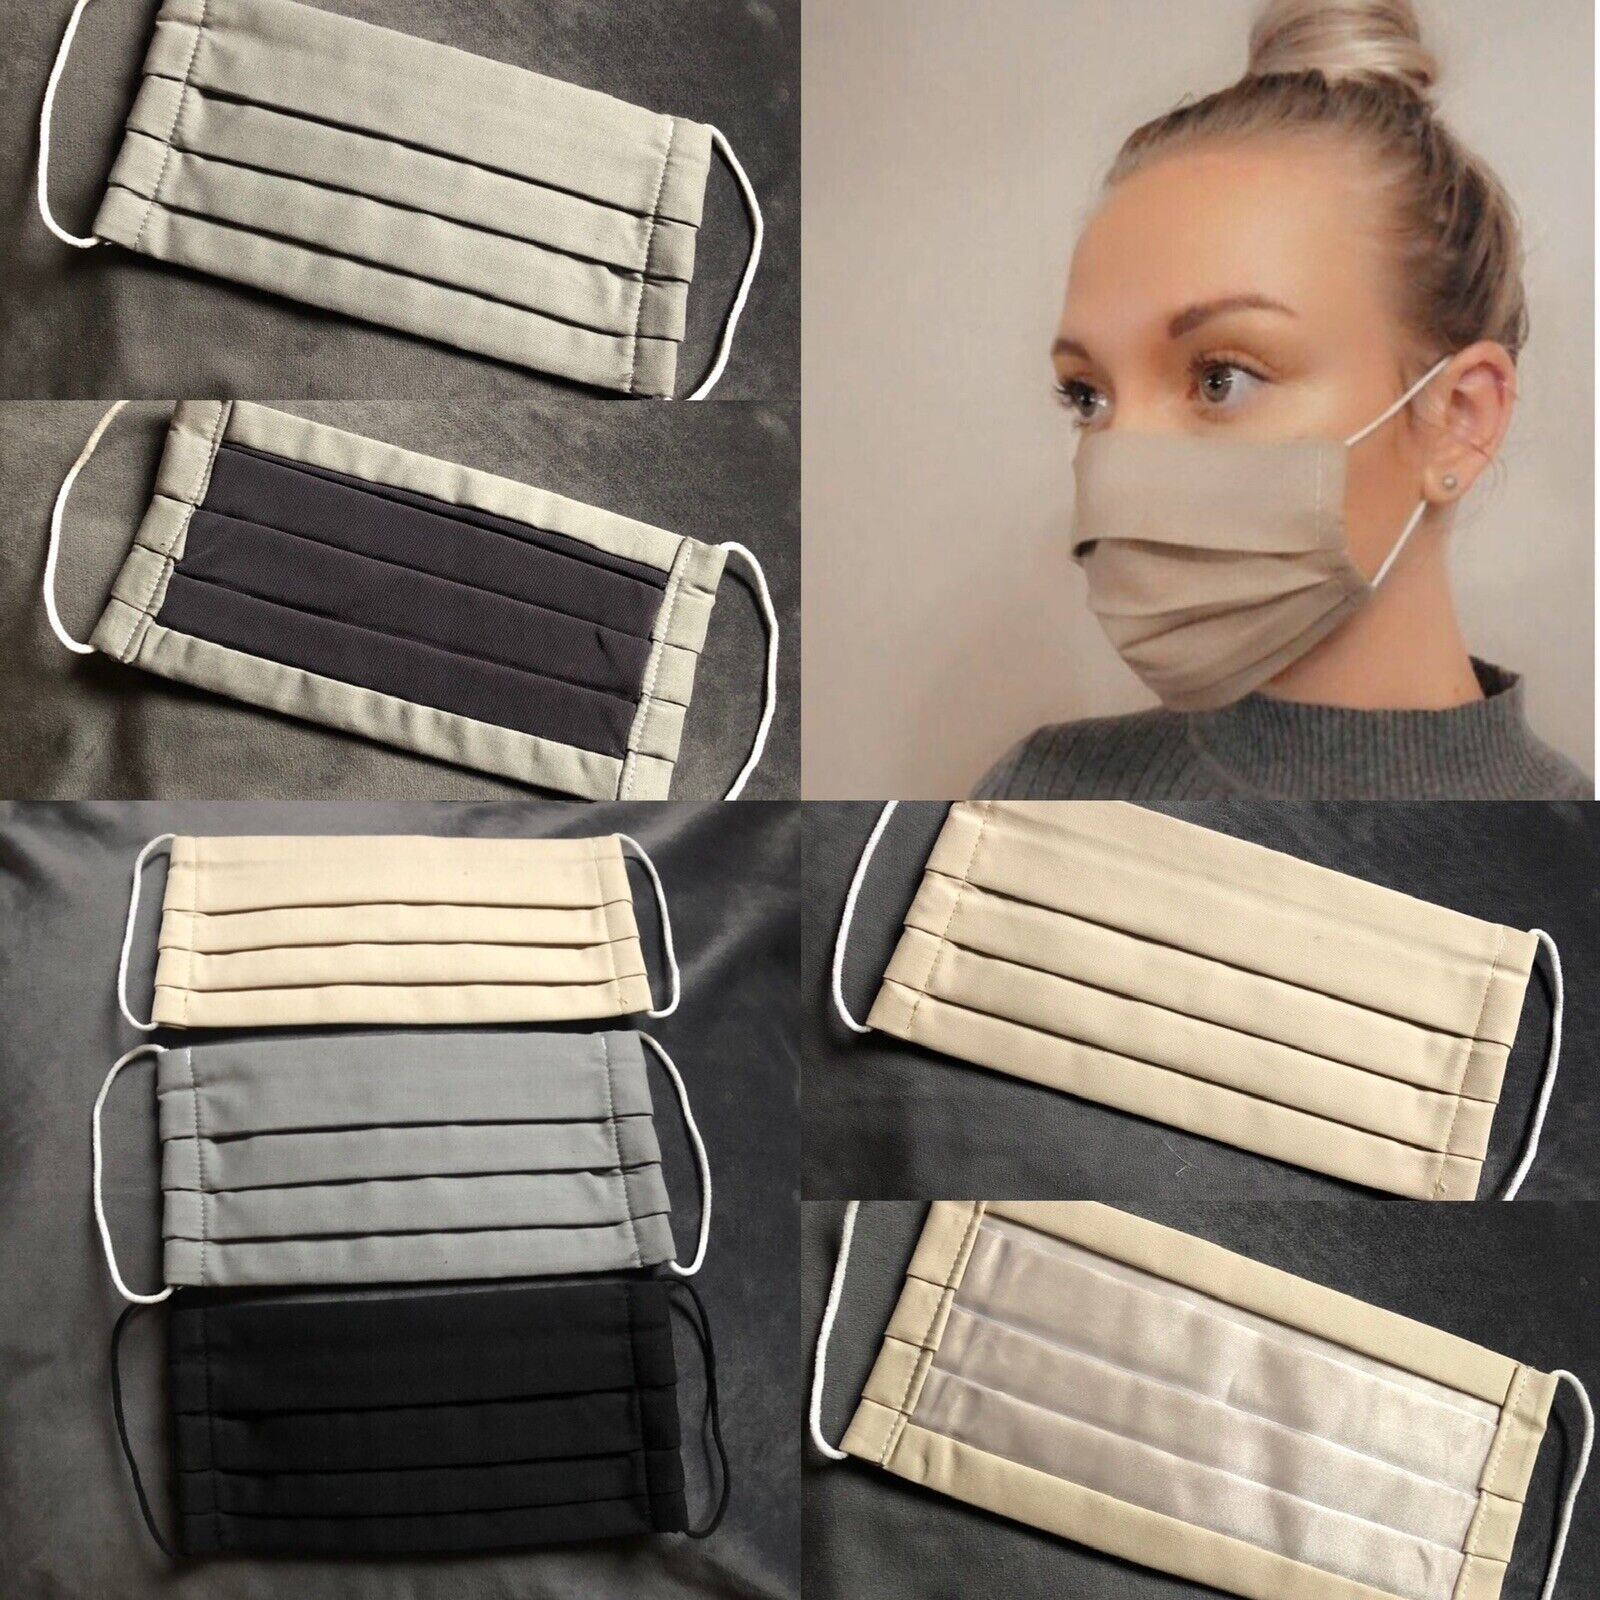 X3 2 ply face mask Trio Multipack Cotton Washable Nose Wire Nude Grey Black